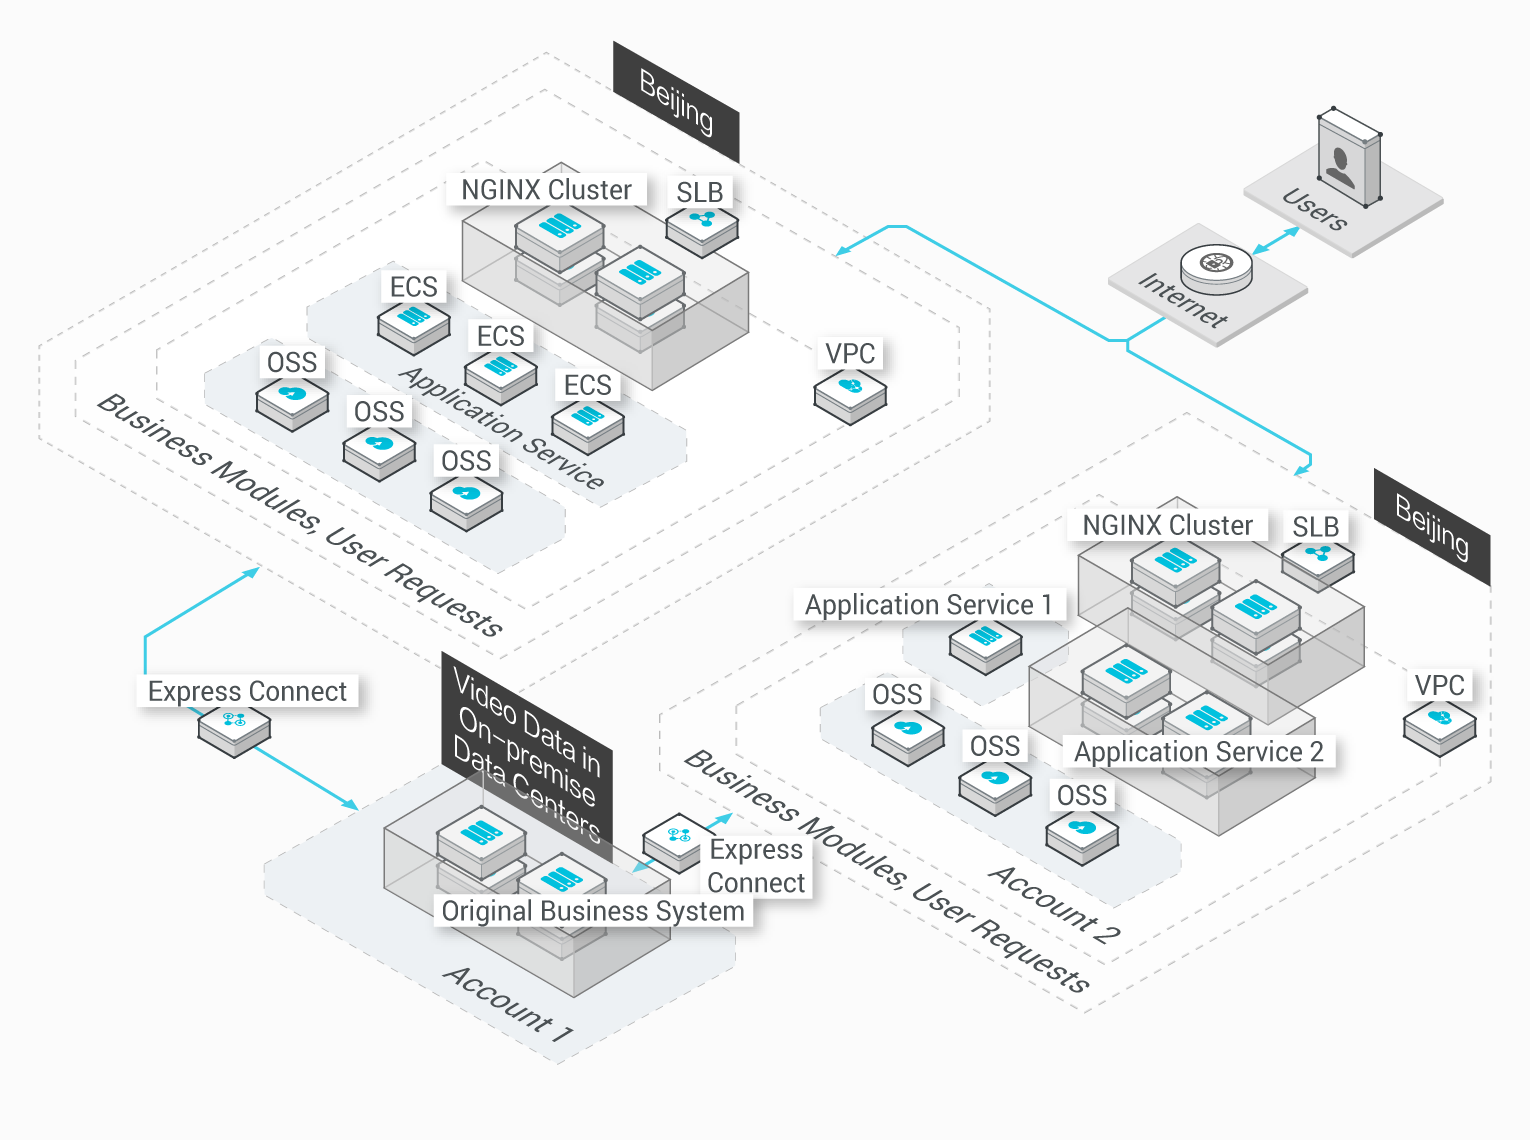 Express Connect: Private Cloud Network Environment with High